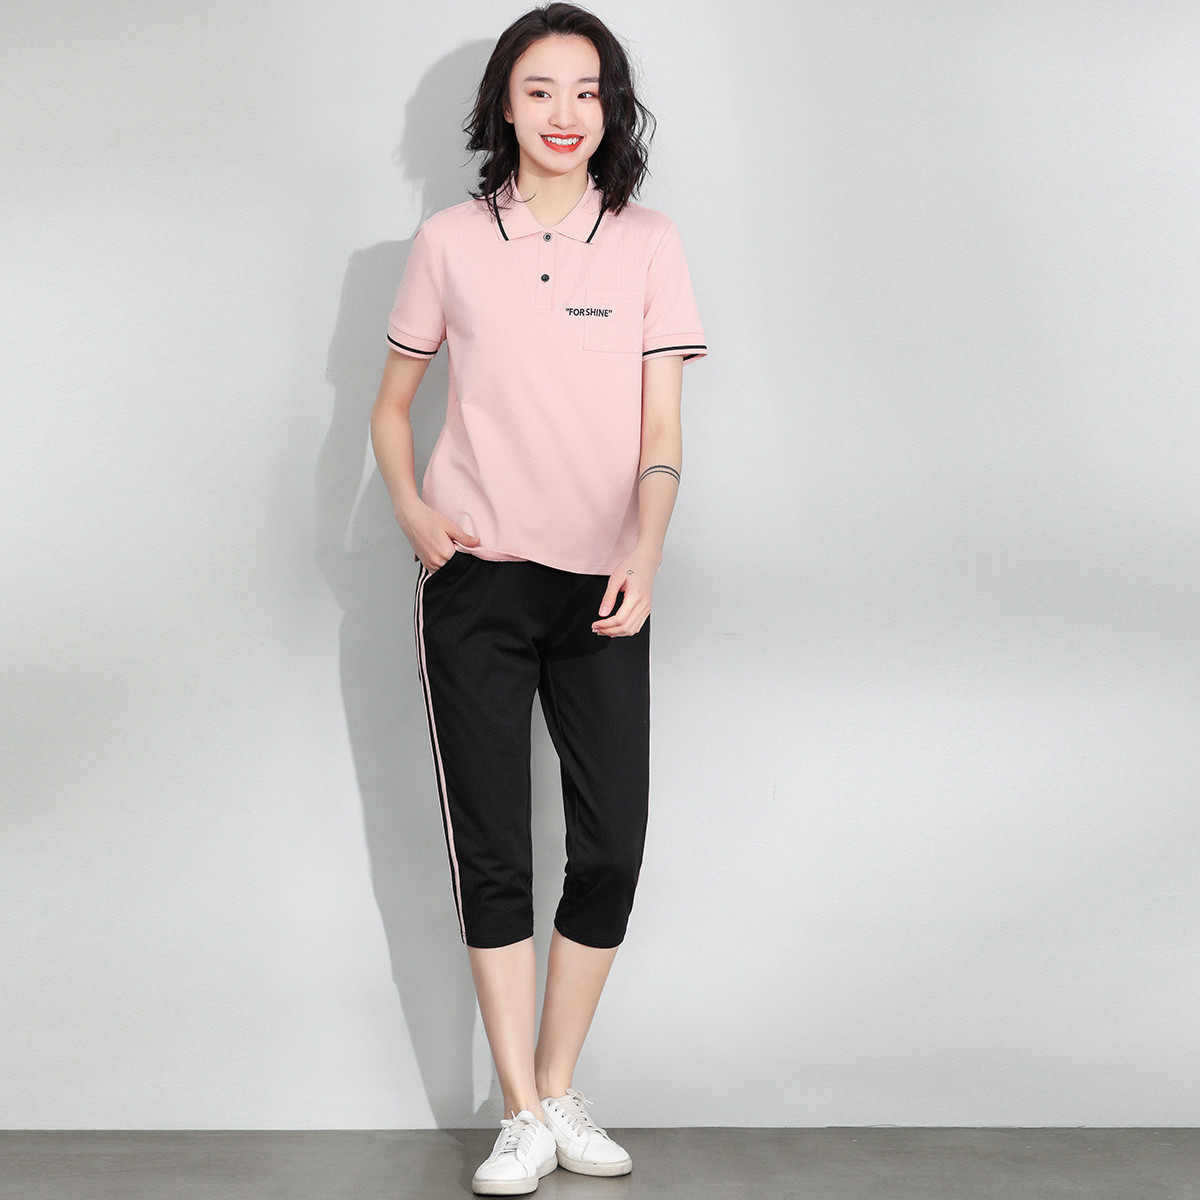 Free breathing 2020 summer new Polo Lapel short sleeve T-shirt slim fit Capris fashion casual suit for women